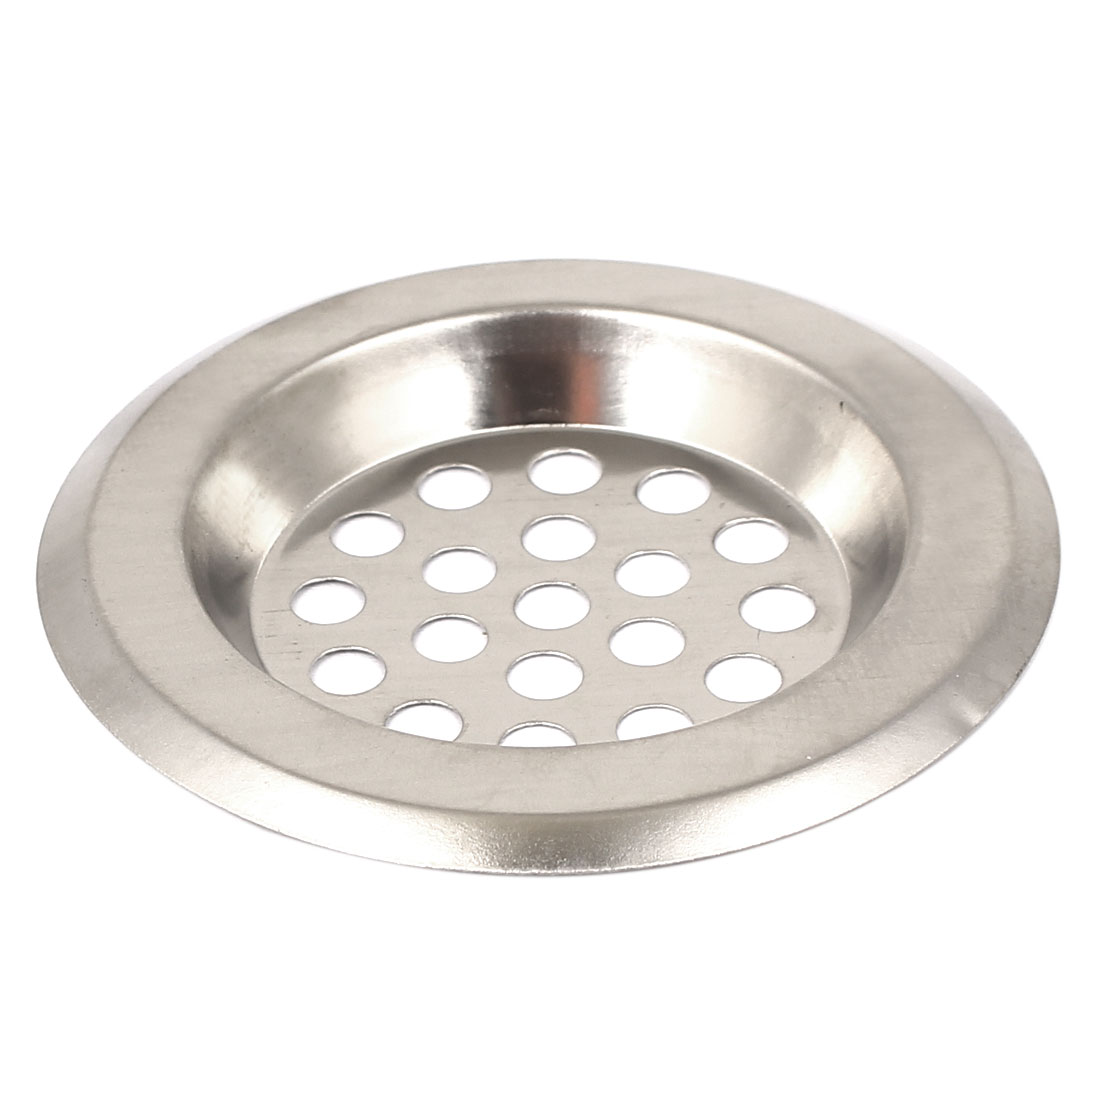 how to clean metal sink strainer